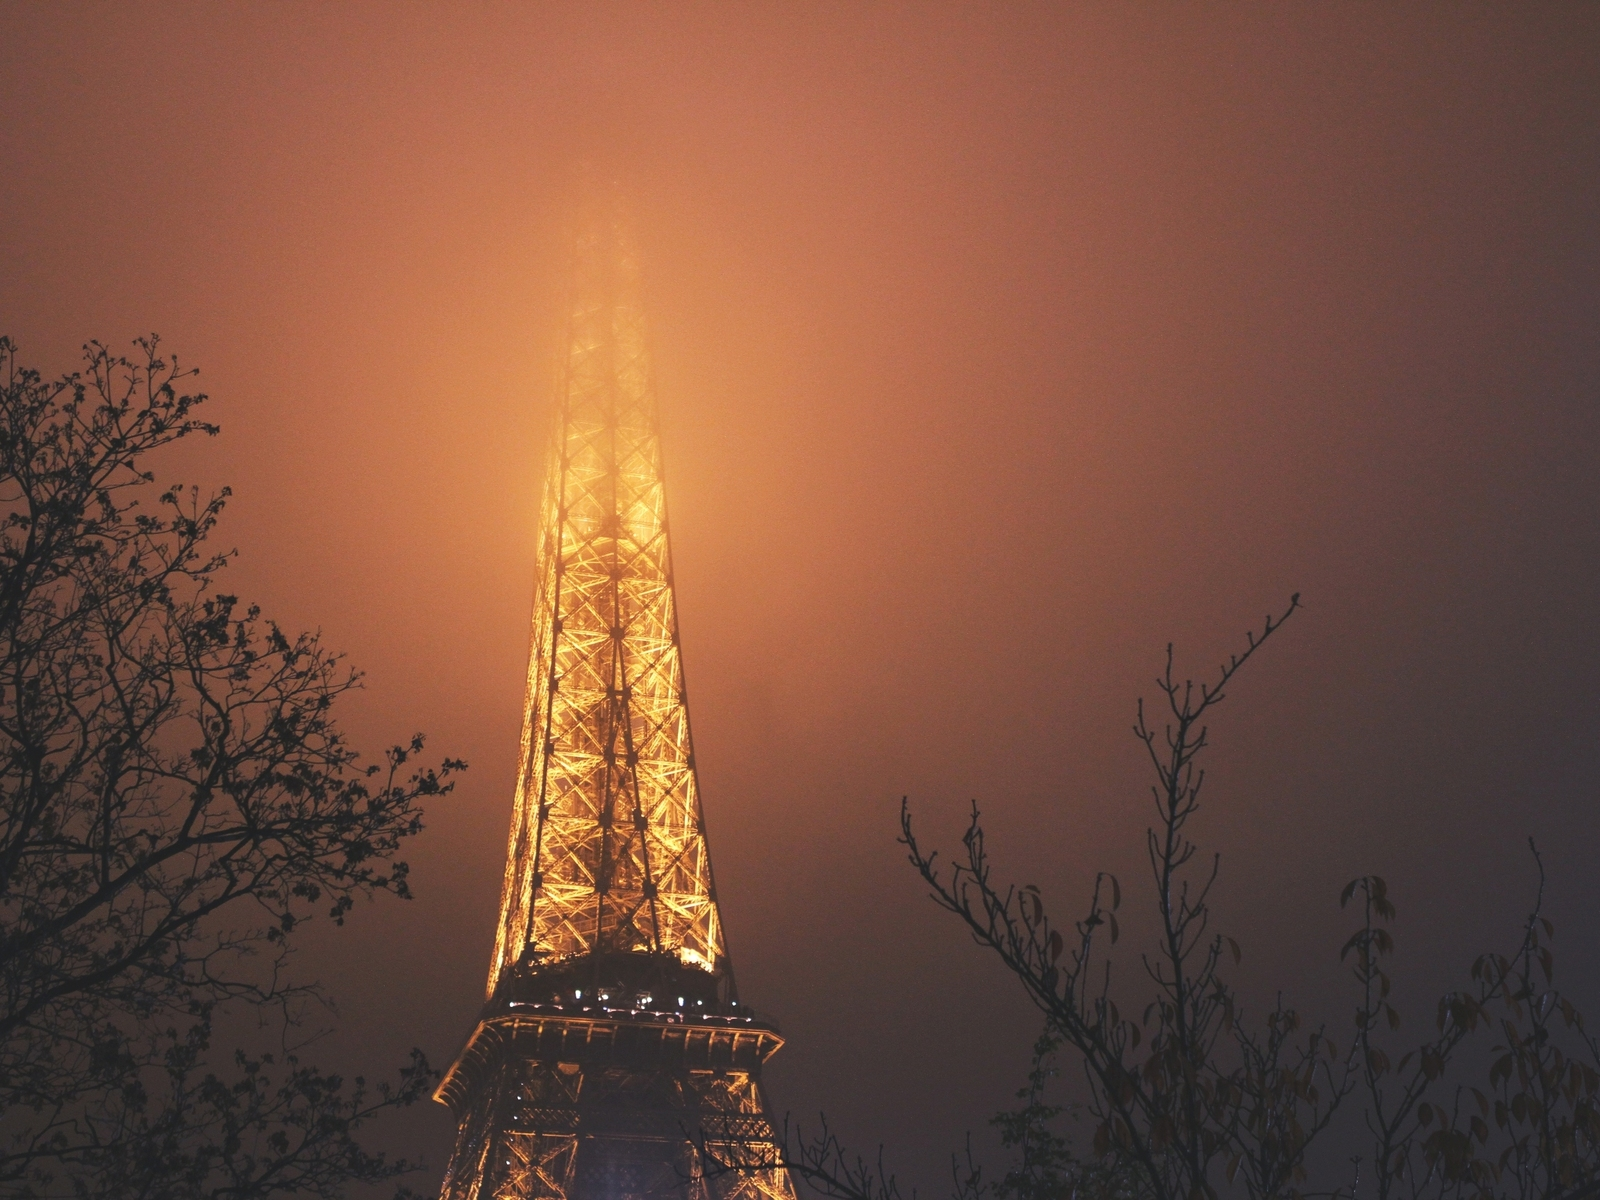 The Eiffel Tower in the fog